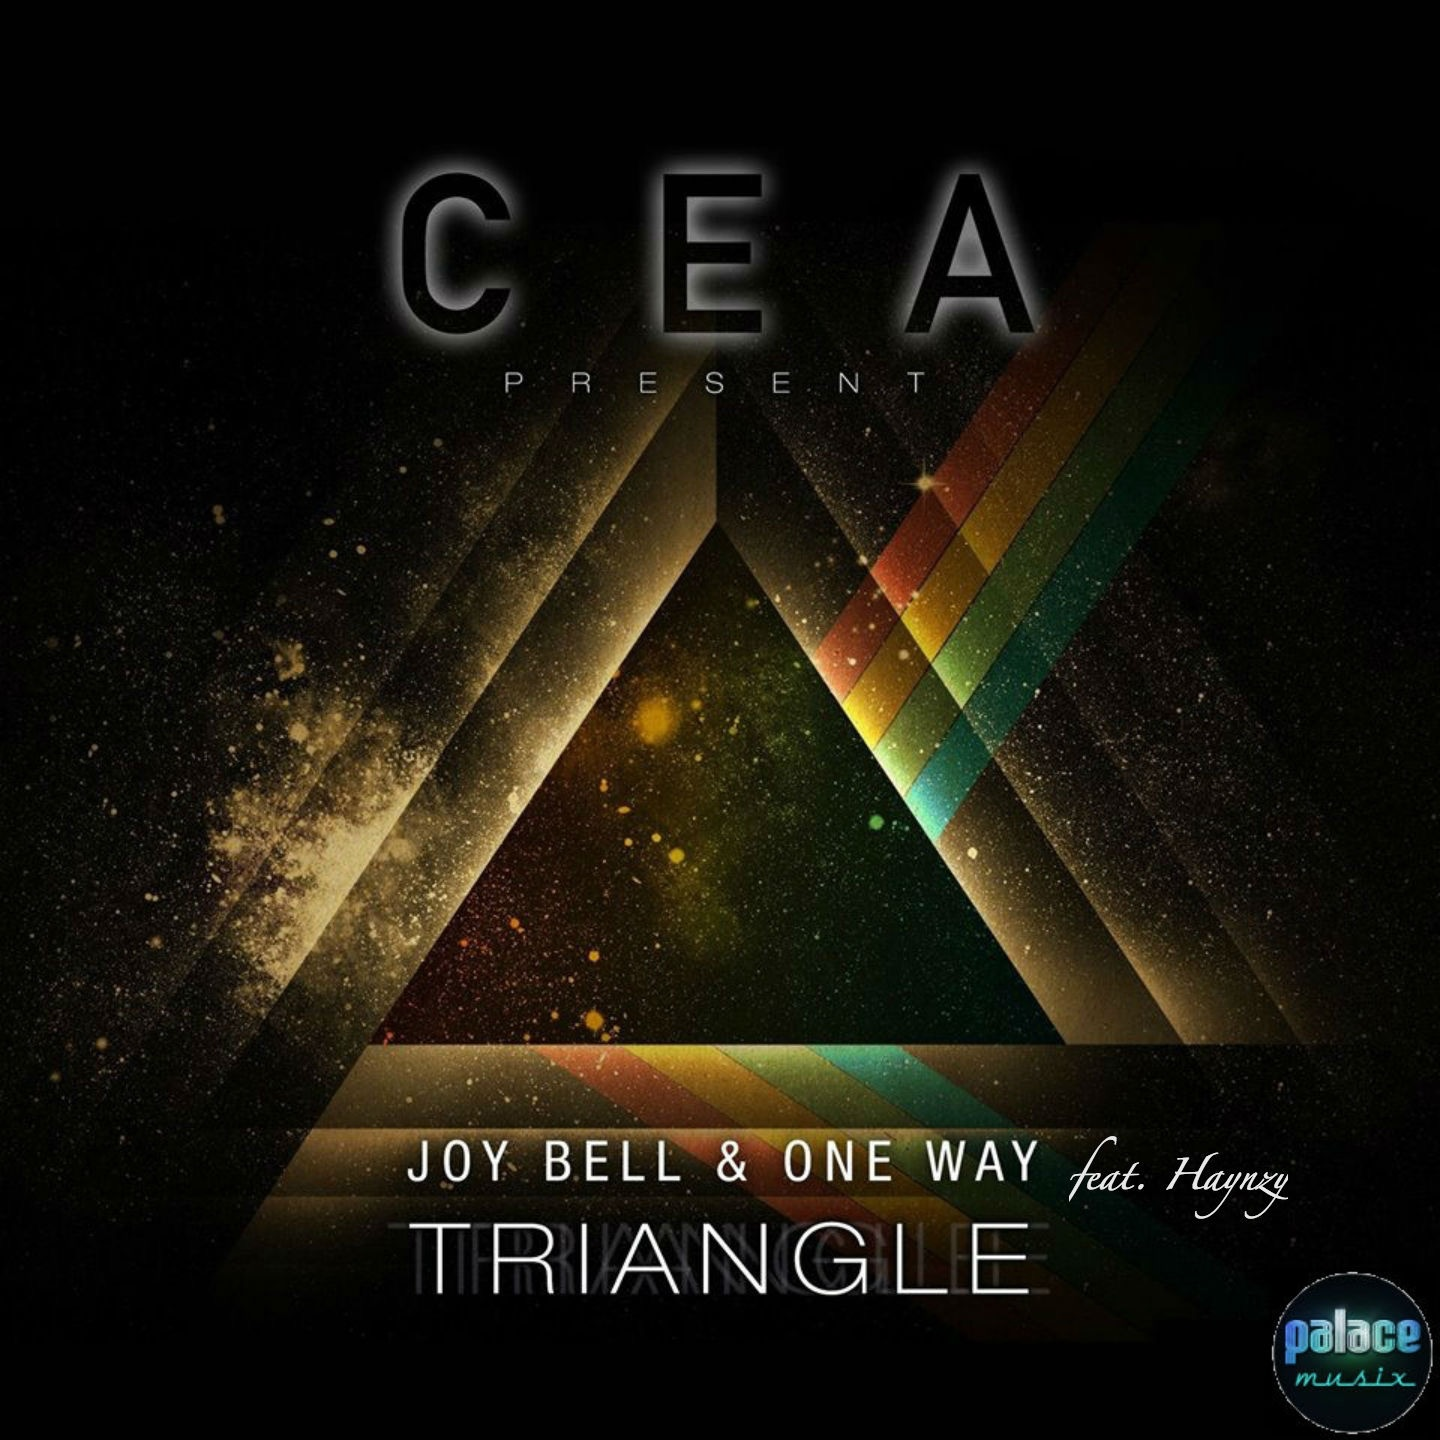 Triangle (feat. Haynzy) - Single